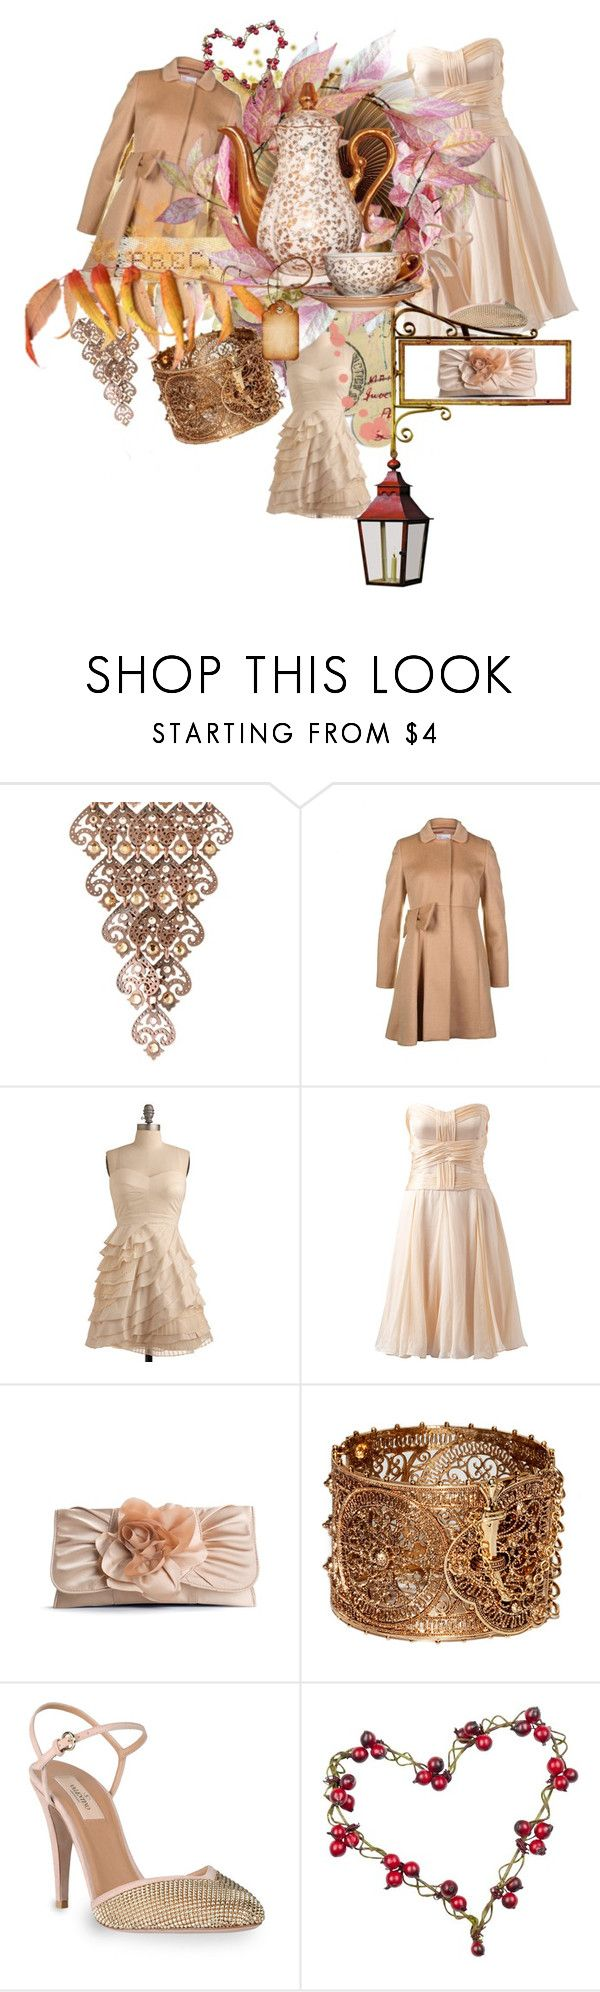 """Winter holidays party looks"" by flaviastylesource ❤ liked on Polyvore featuring LK Designs, RED Valentino, Forever New, Lulu Townsend, Valentino, valentino shoes, valentino camel coat, nude beige, powder pink and filigran bangle"